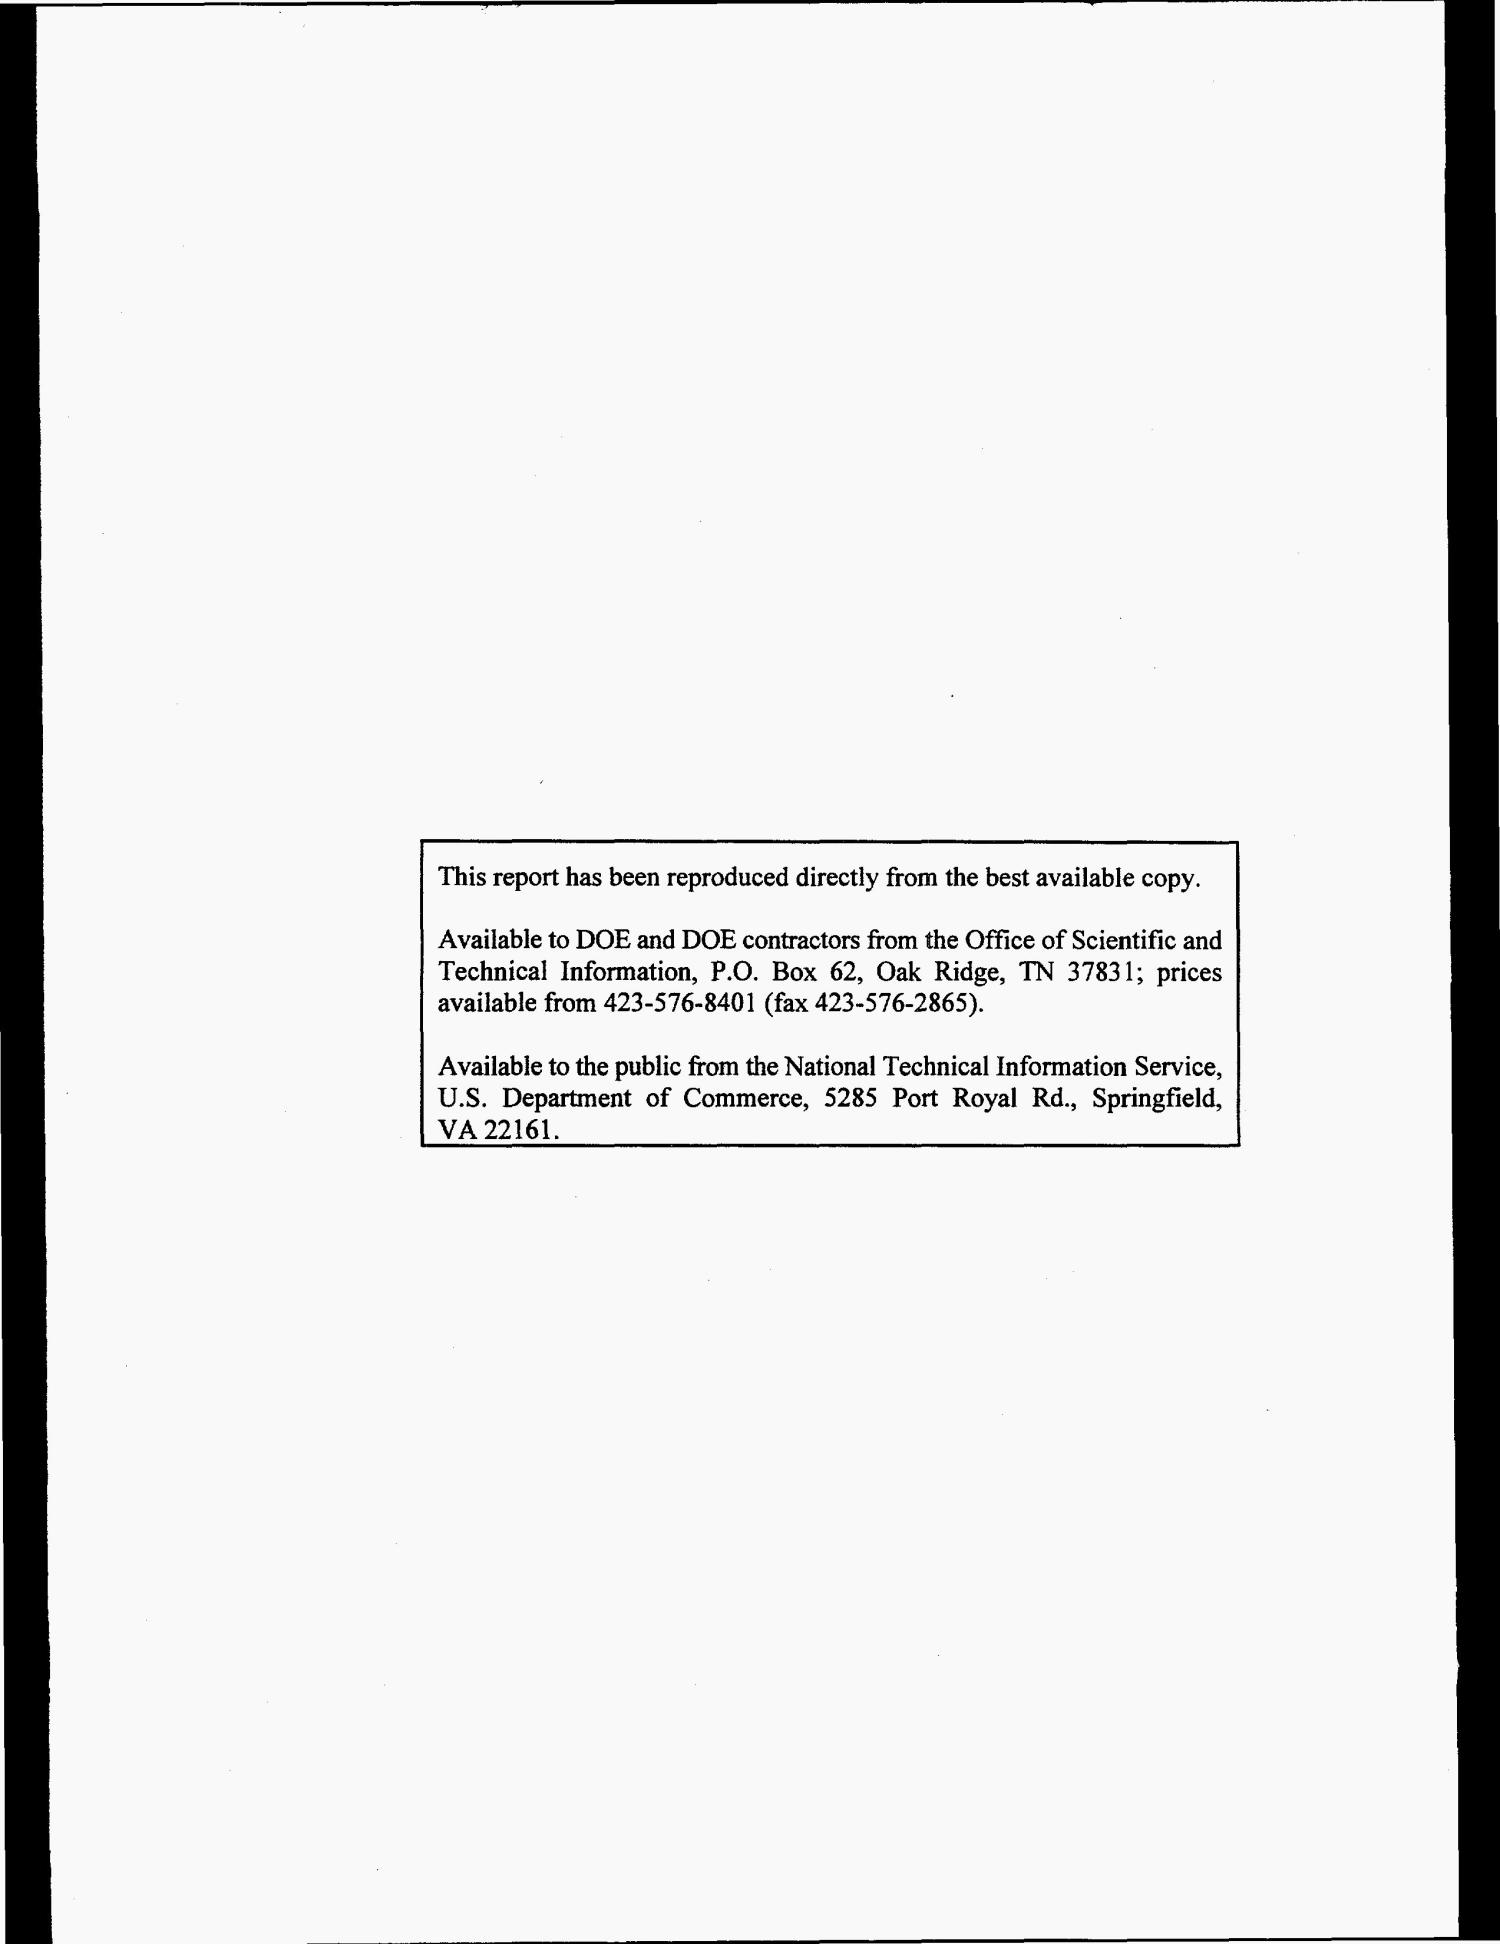 Technical specification for transferring National Pollutant Discharge Elimination System water data to the Oak Ridge Environmental Information System                                                                                                      [Sequence #]: 2 of 61